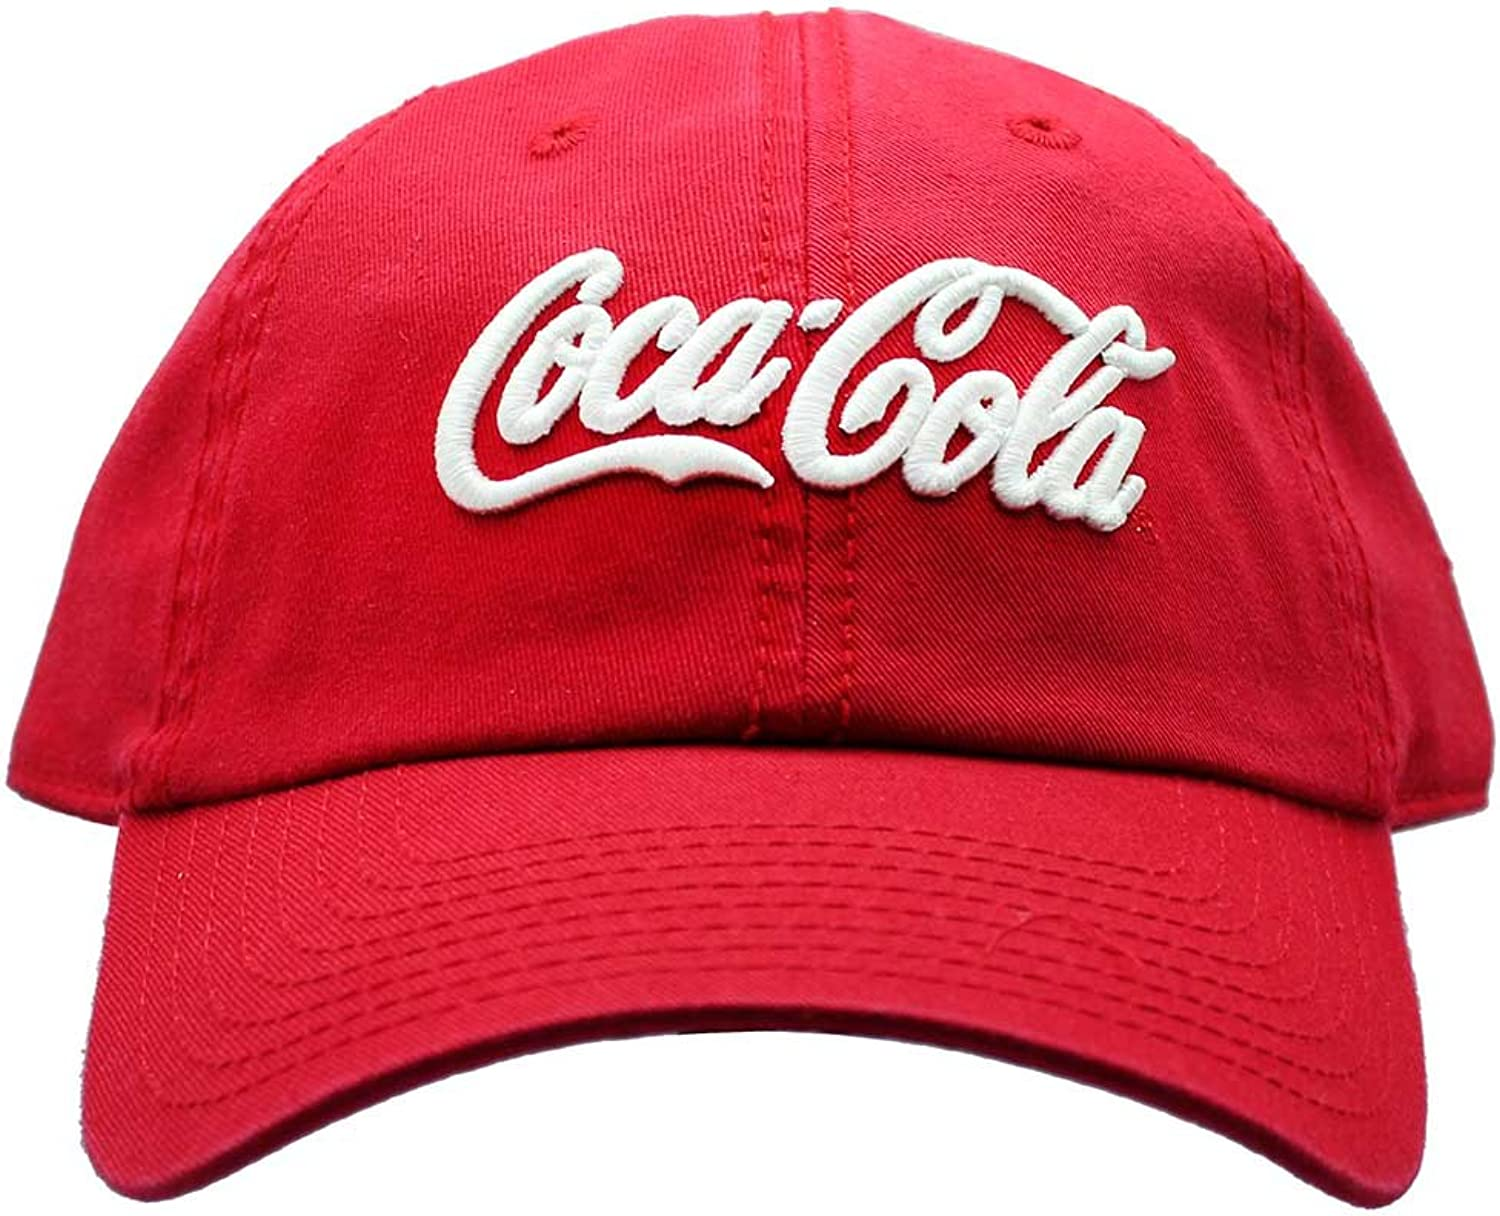 American Needle X CocaCola Washed Raglan Hat in Red White